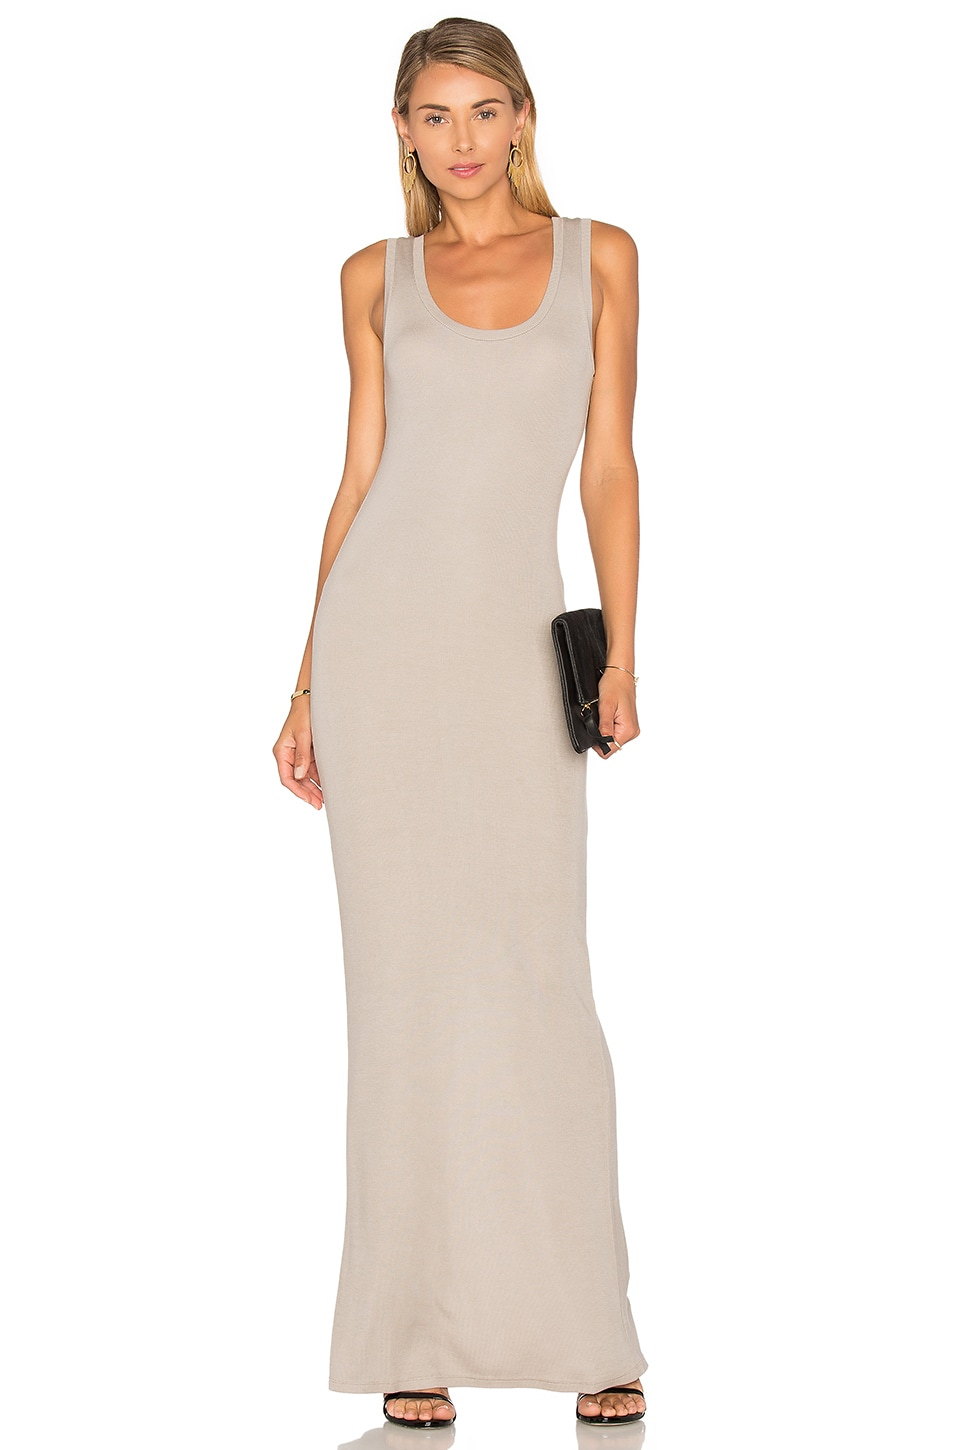 914aae23996 Heather Scoop Neck Tank Maxi Dress in Birch